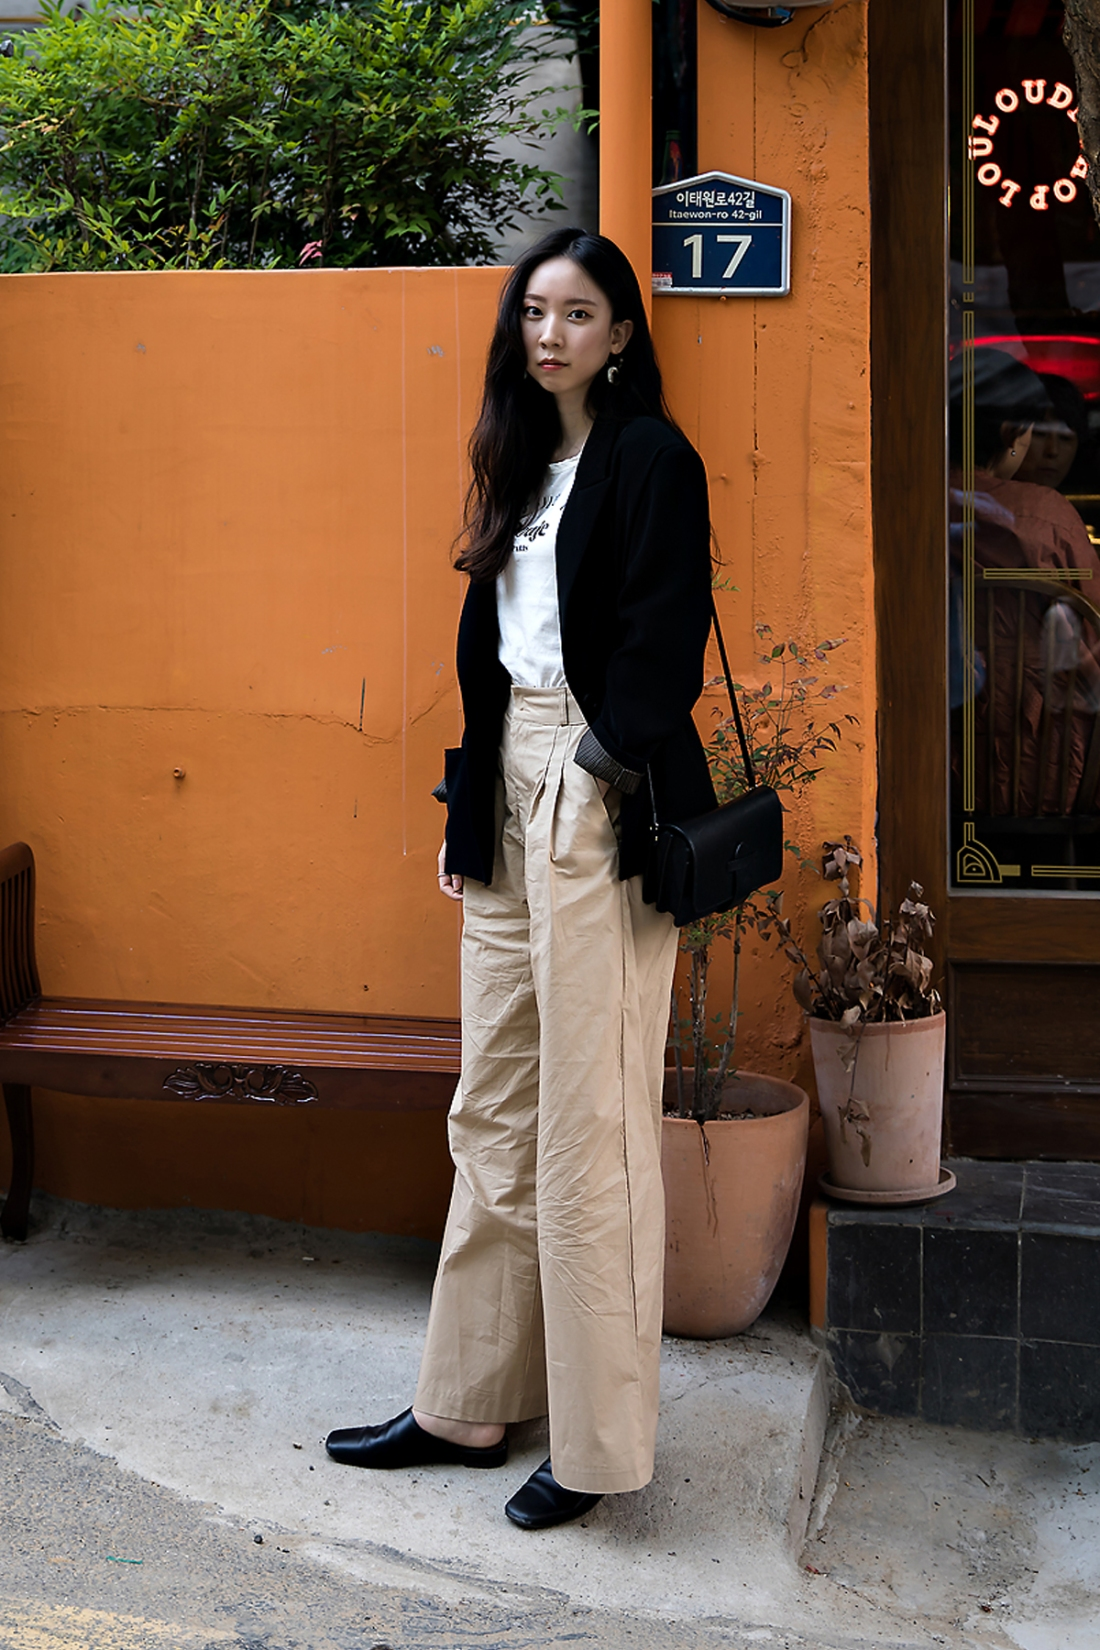 Park Jieun, Street Fashion 2017 in Seoul.jpg